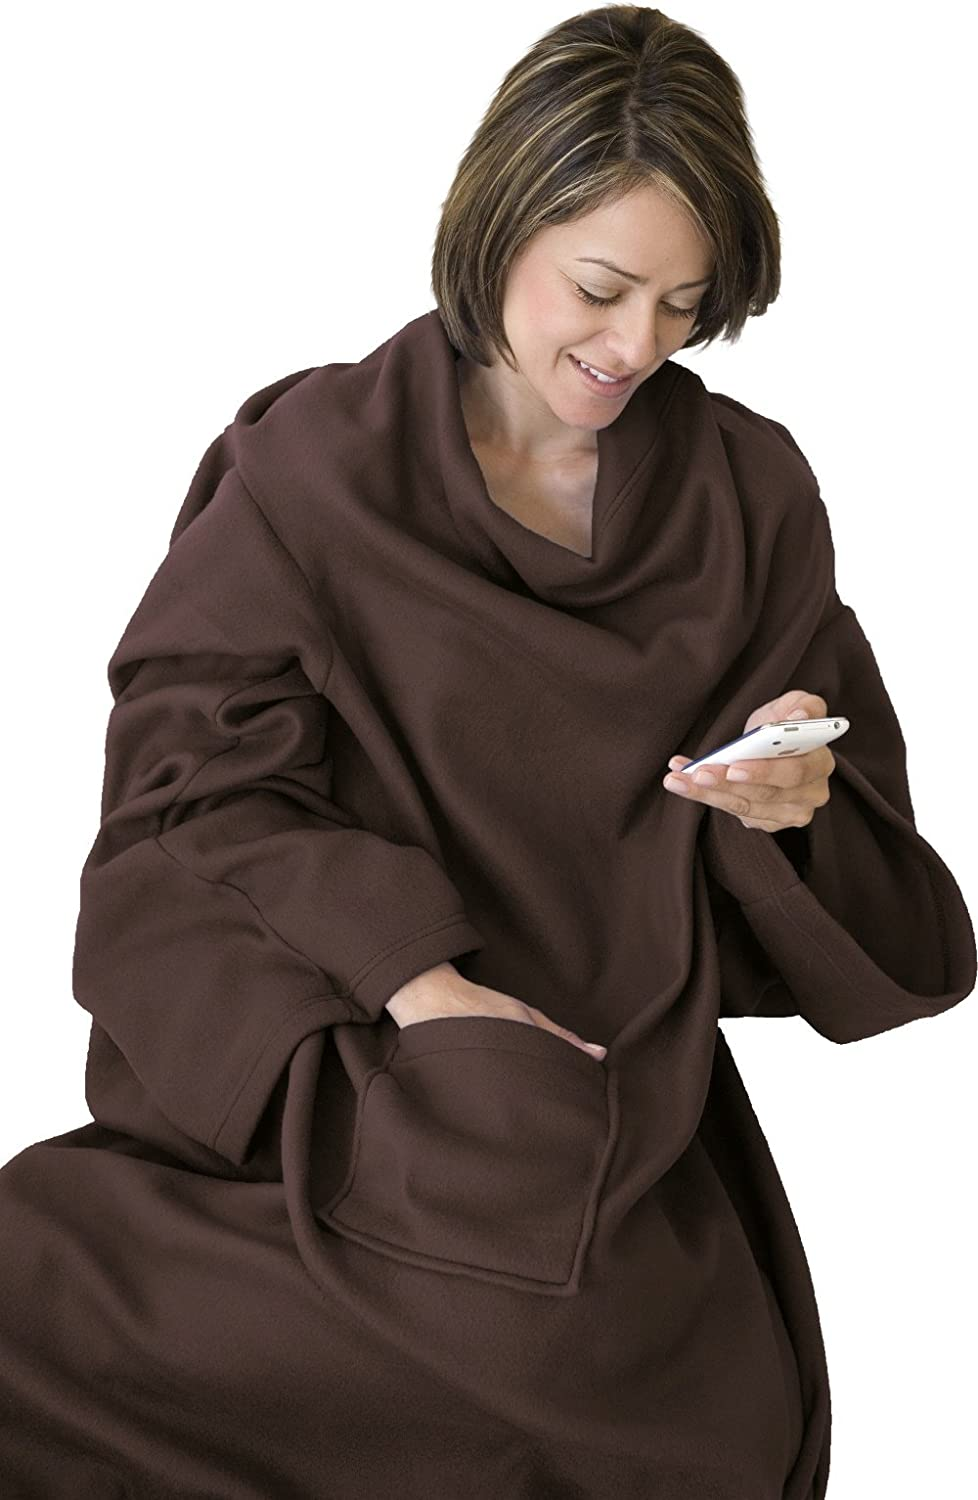 KC Caps Super Soft Fleece Blanket with Sleeves and Pocket, Super Cozy Microplush Wearable Throw for Women and Men Adult Comfy Throw Robe, 53